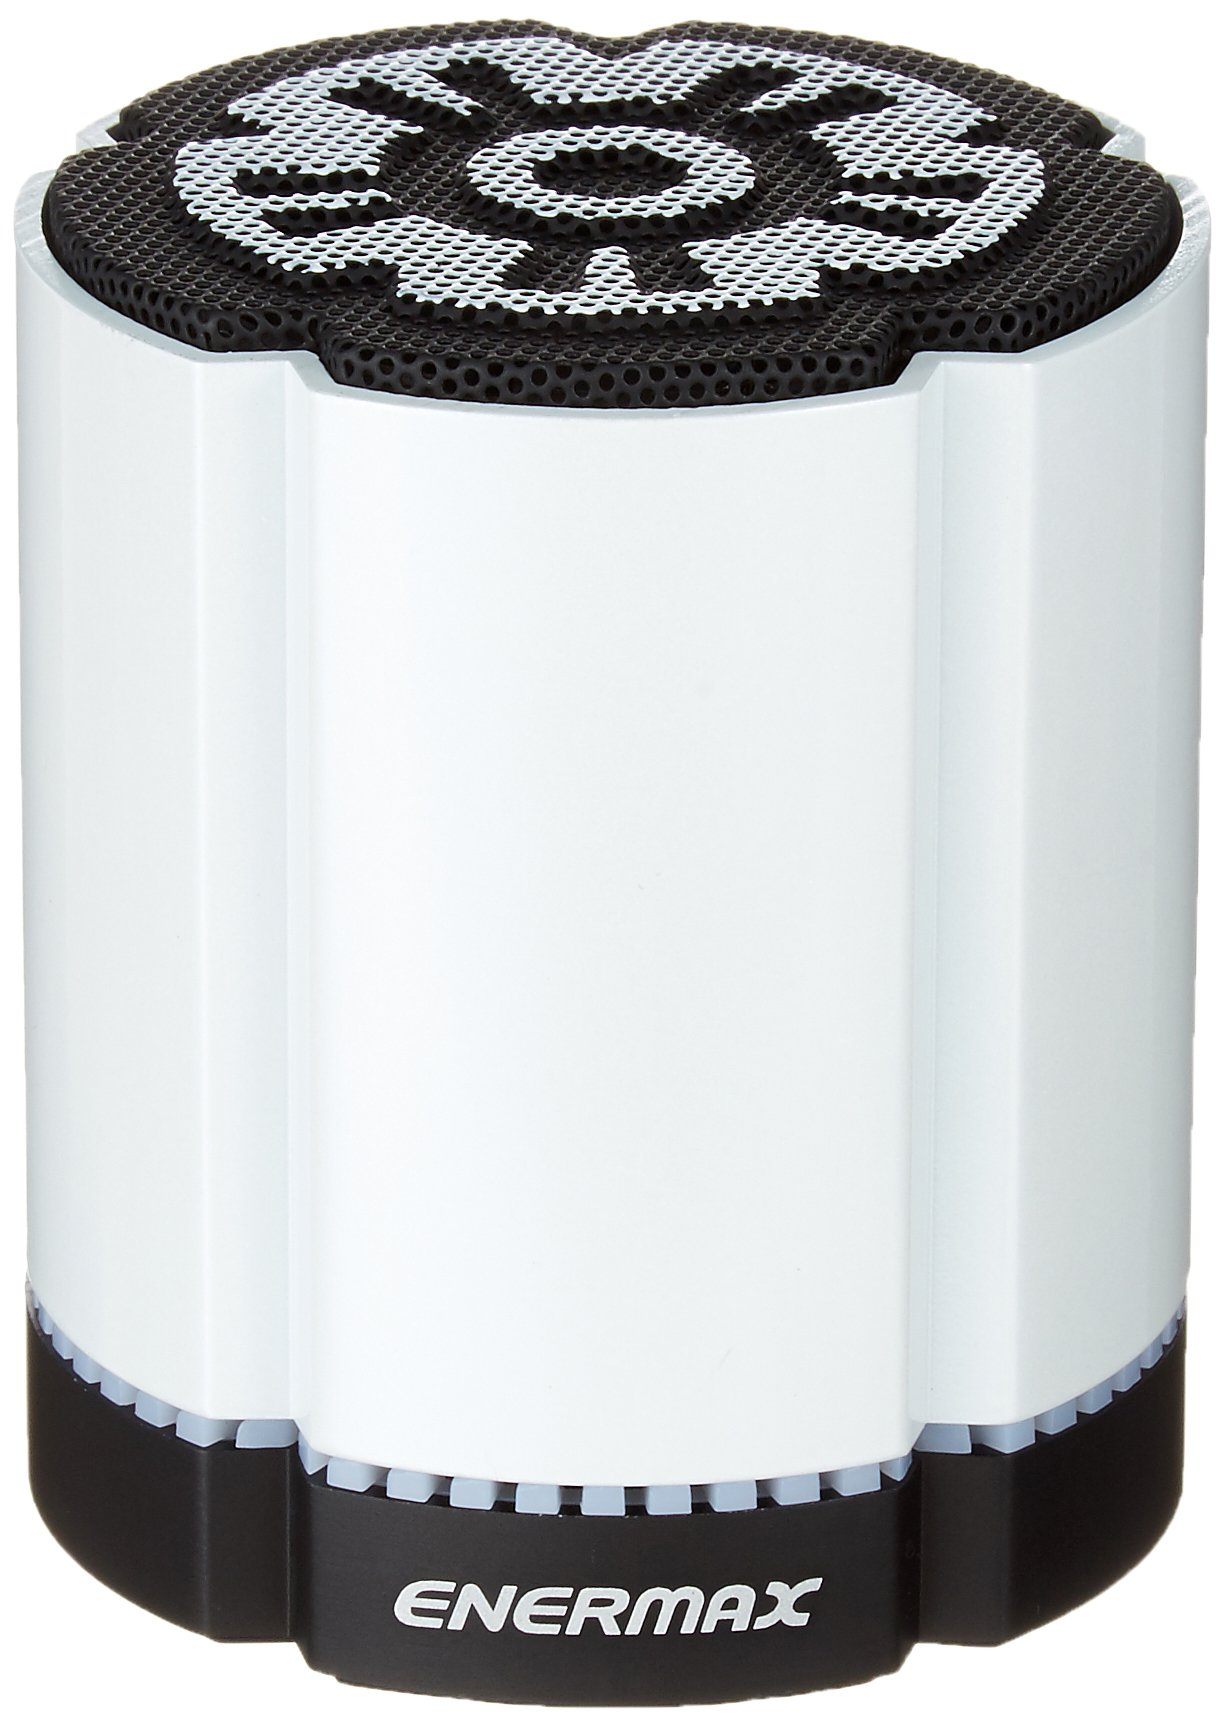 ENERMAX EAS02S-W 2 Units Simultaneous Pairing Function Equipped Bluetooth Speaker Stereosgl White